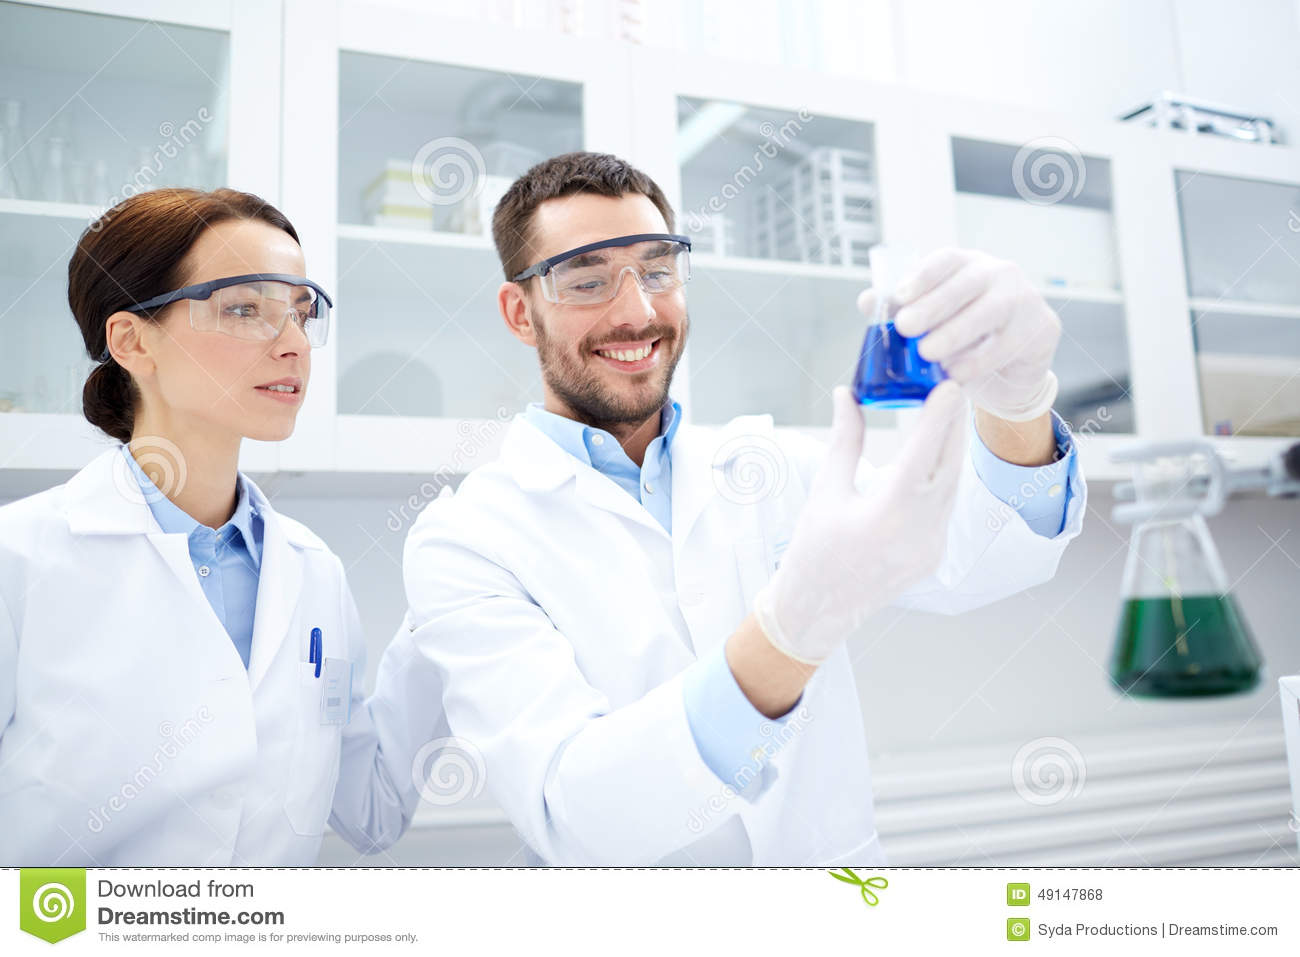 lab scientists research young making science chemistry biology test technology person laboratory flask holding ontario chemists concept chemical ethics preview